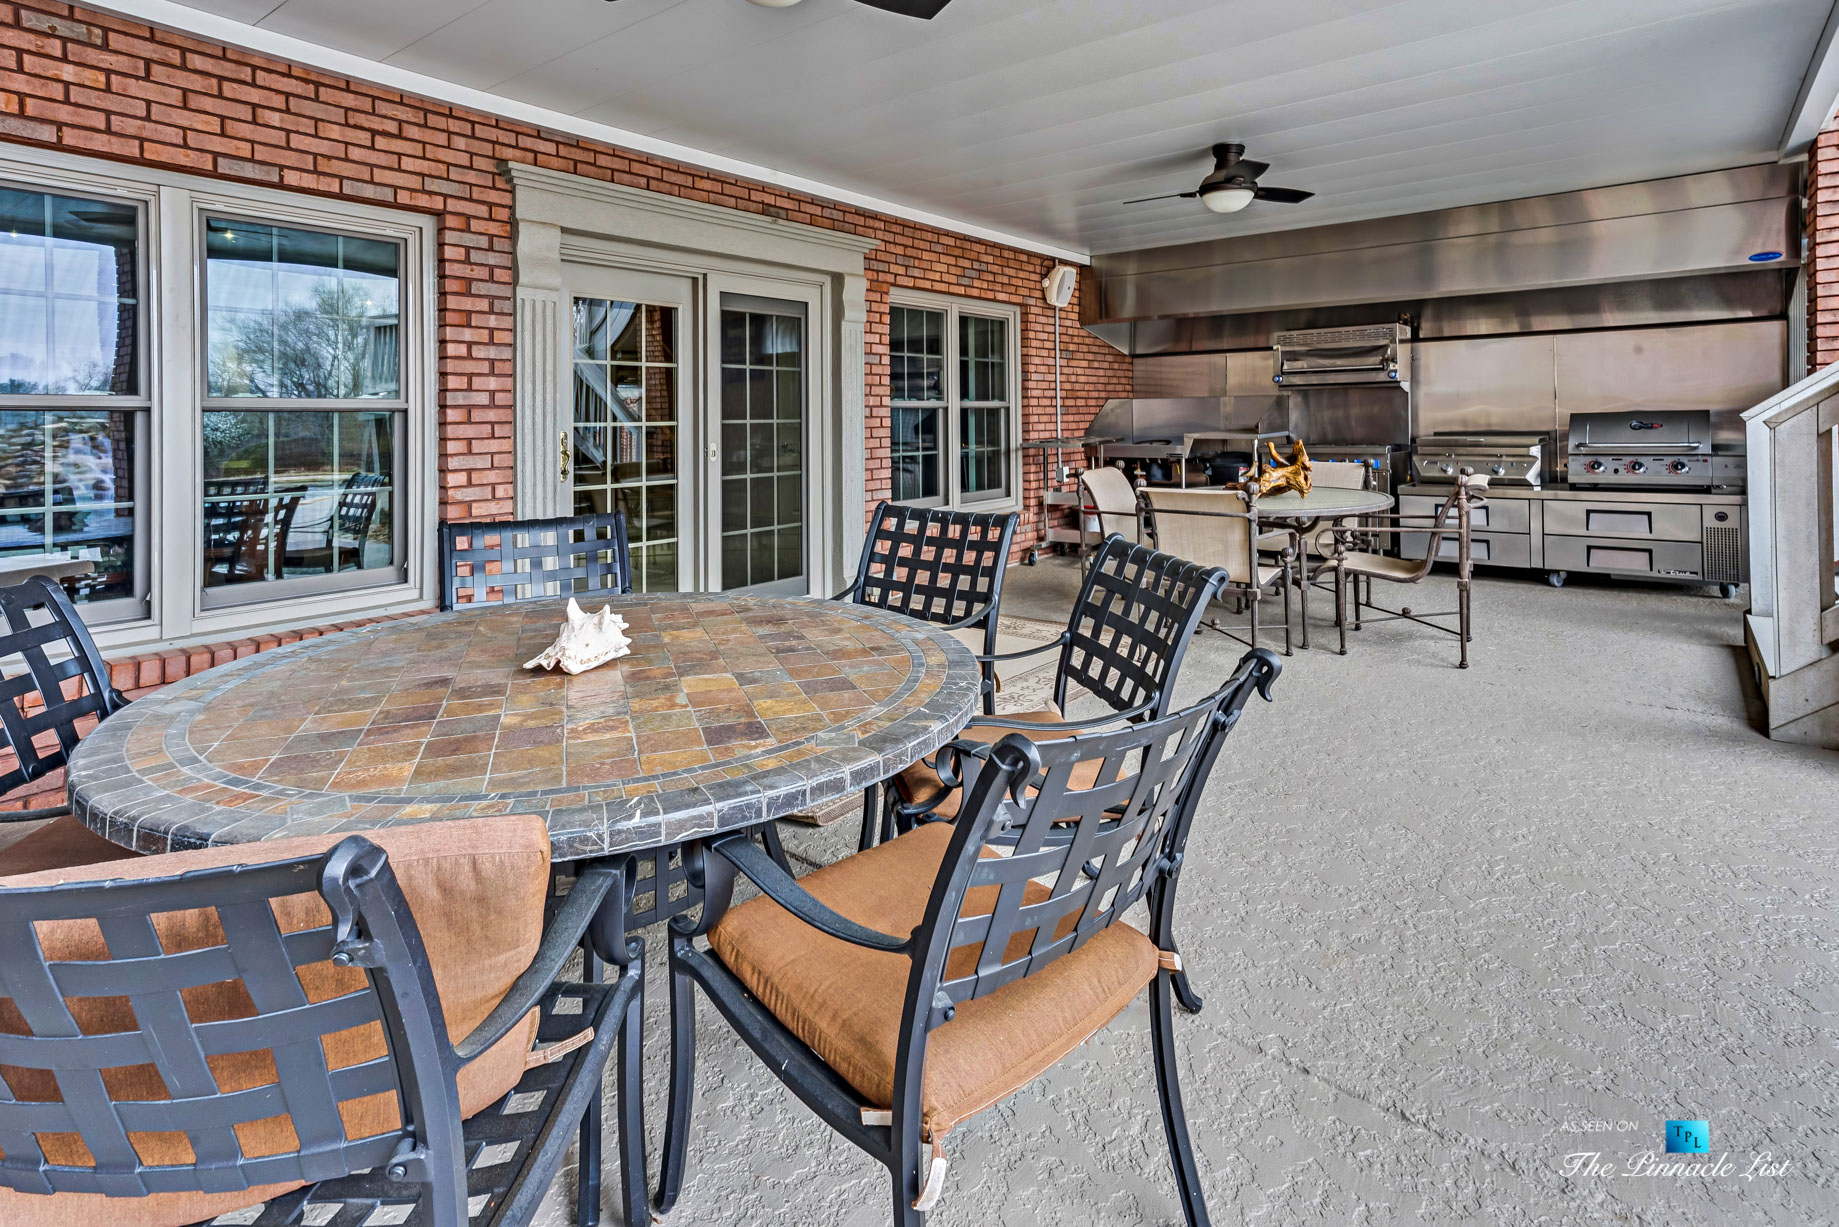 2219 Costley Mill Rd NE, Conyers, GA, USA – Covered Patio Outdoor Kitchen – Luxury Real Estate – Equestrian Country Home